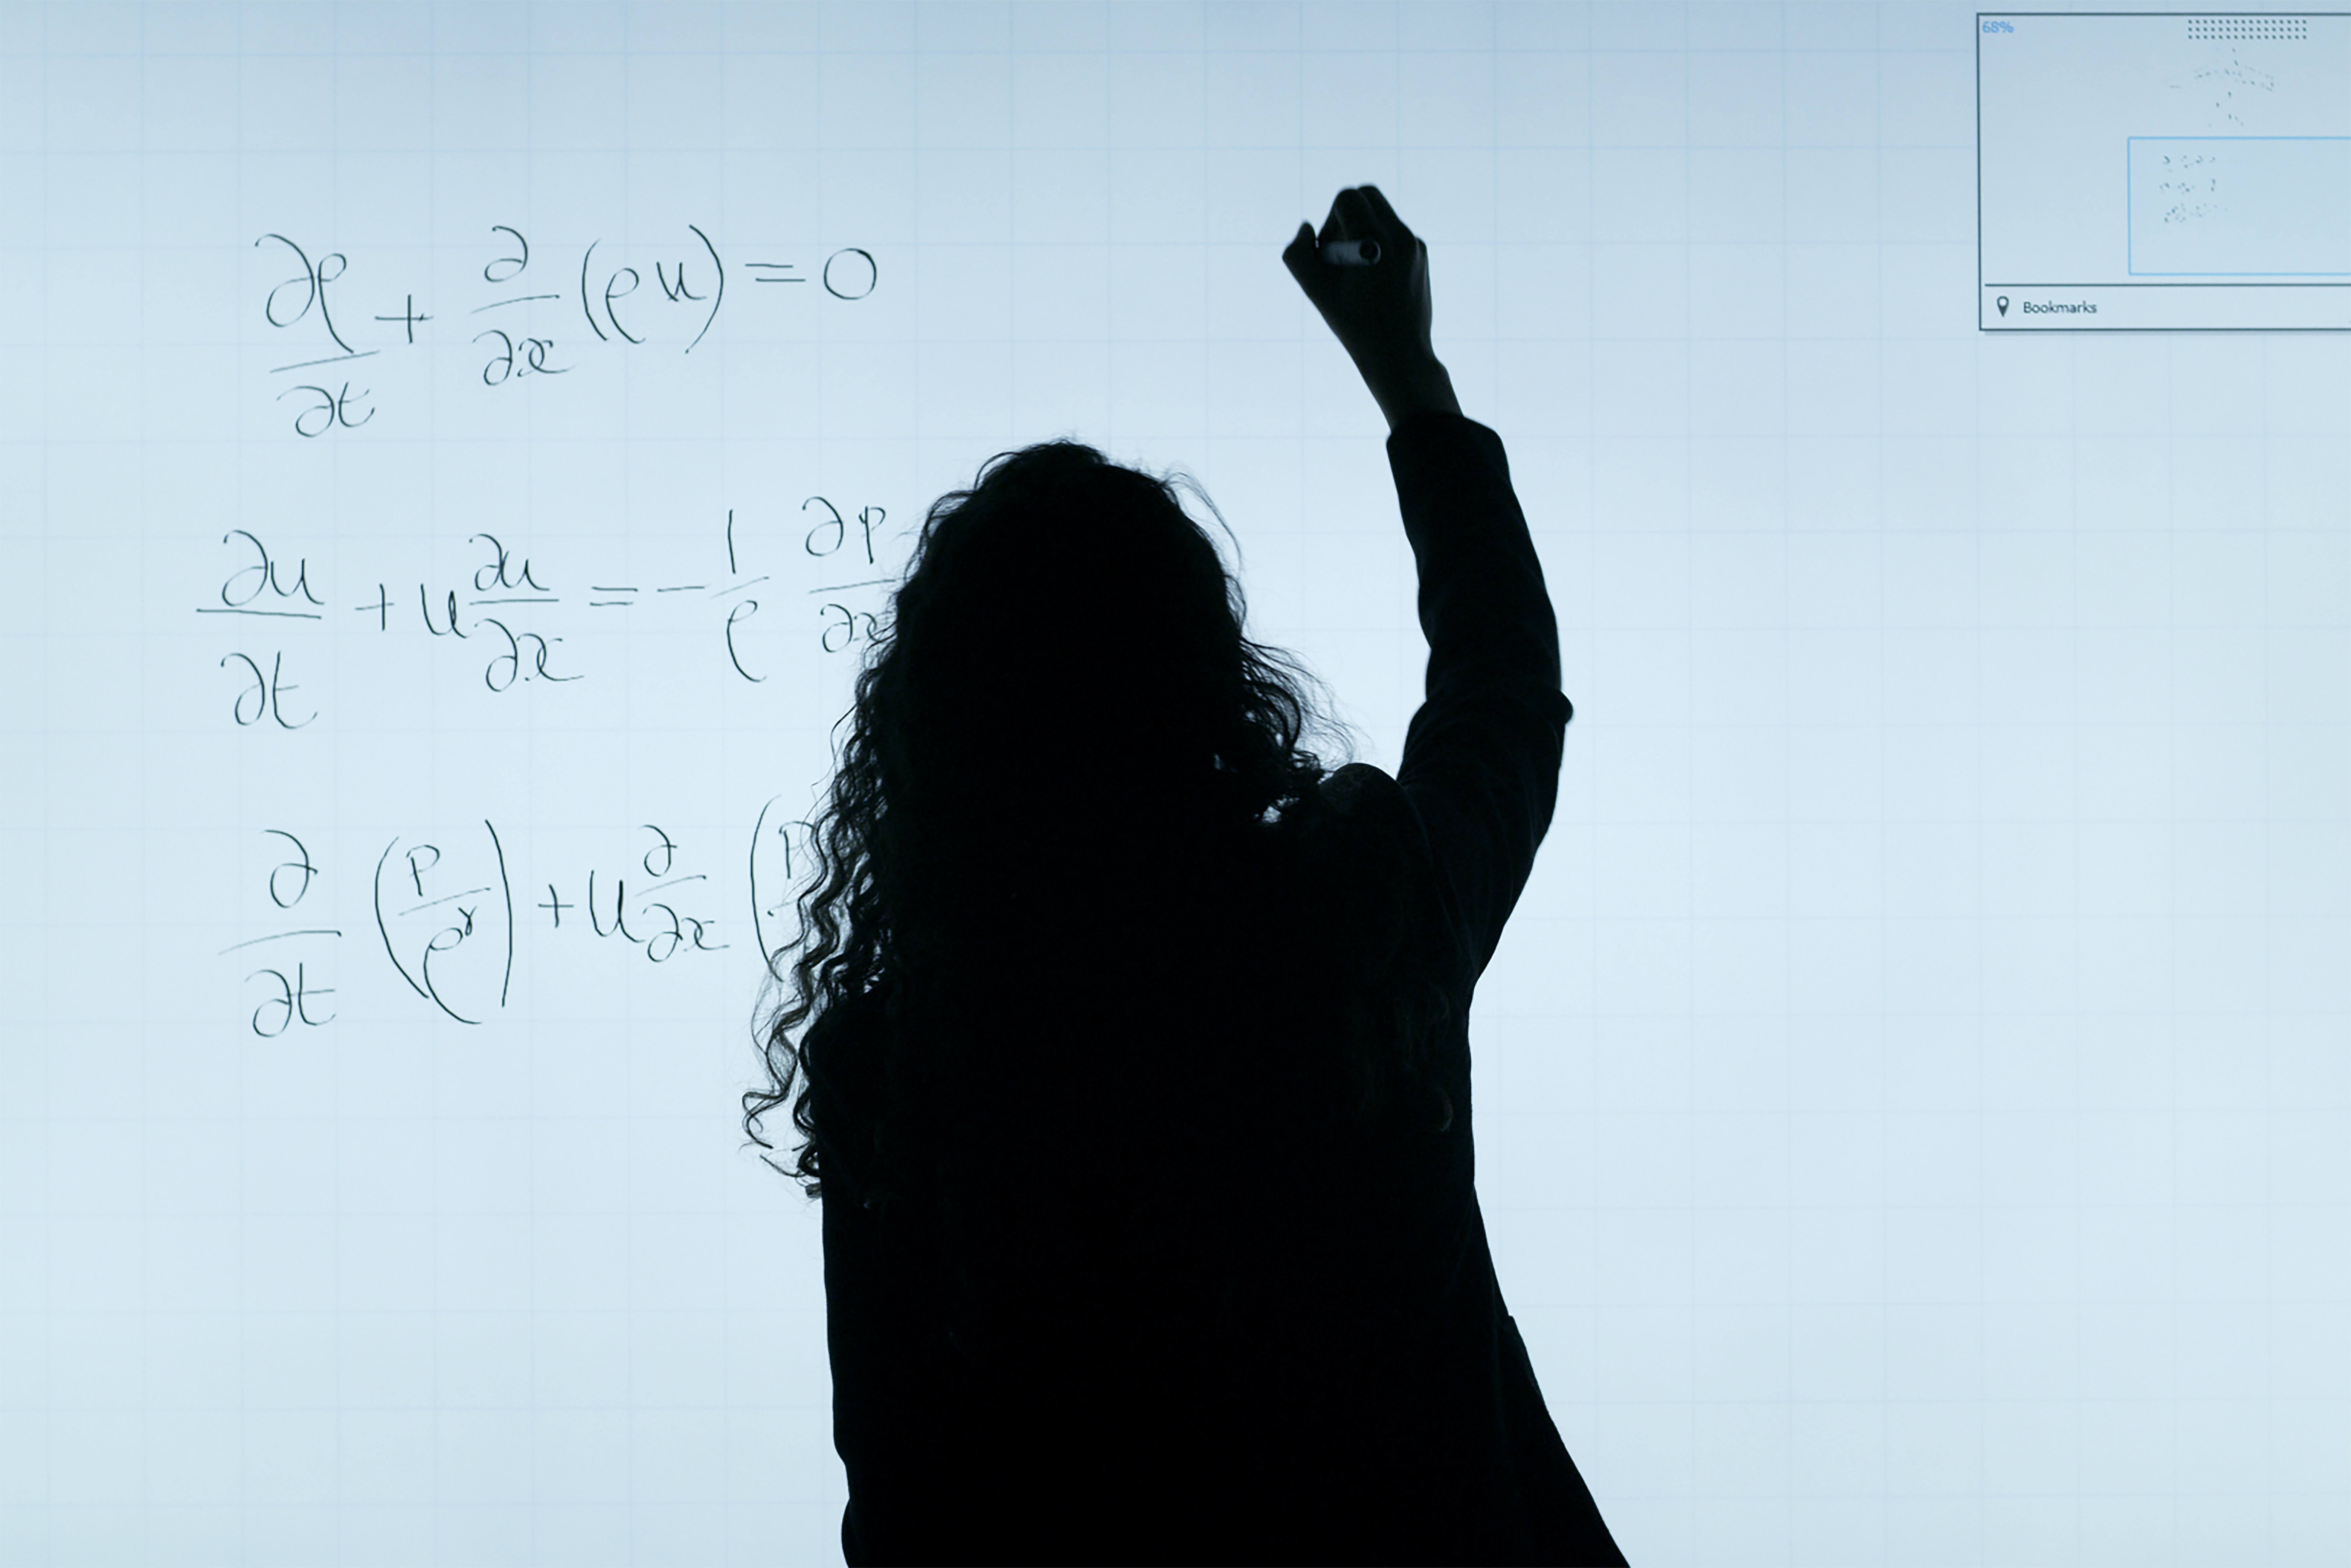 silhouette of student writing maths equations on white board